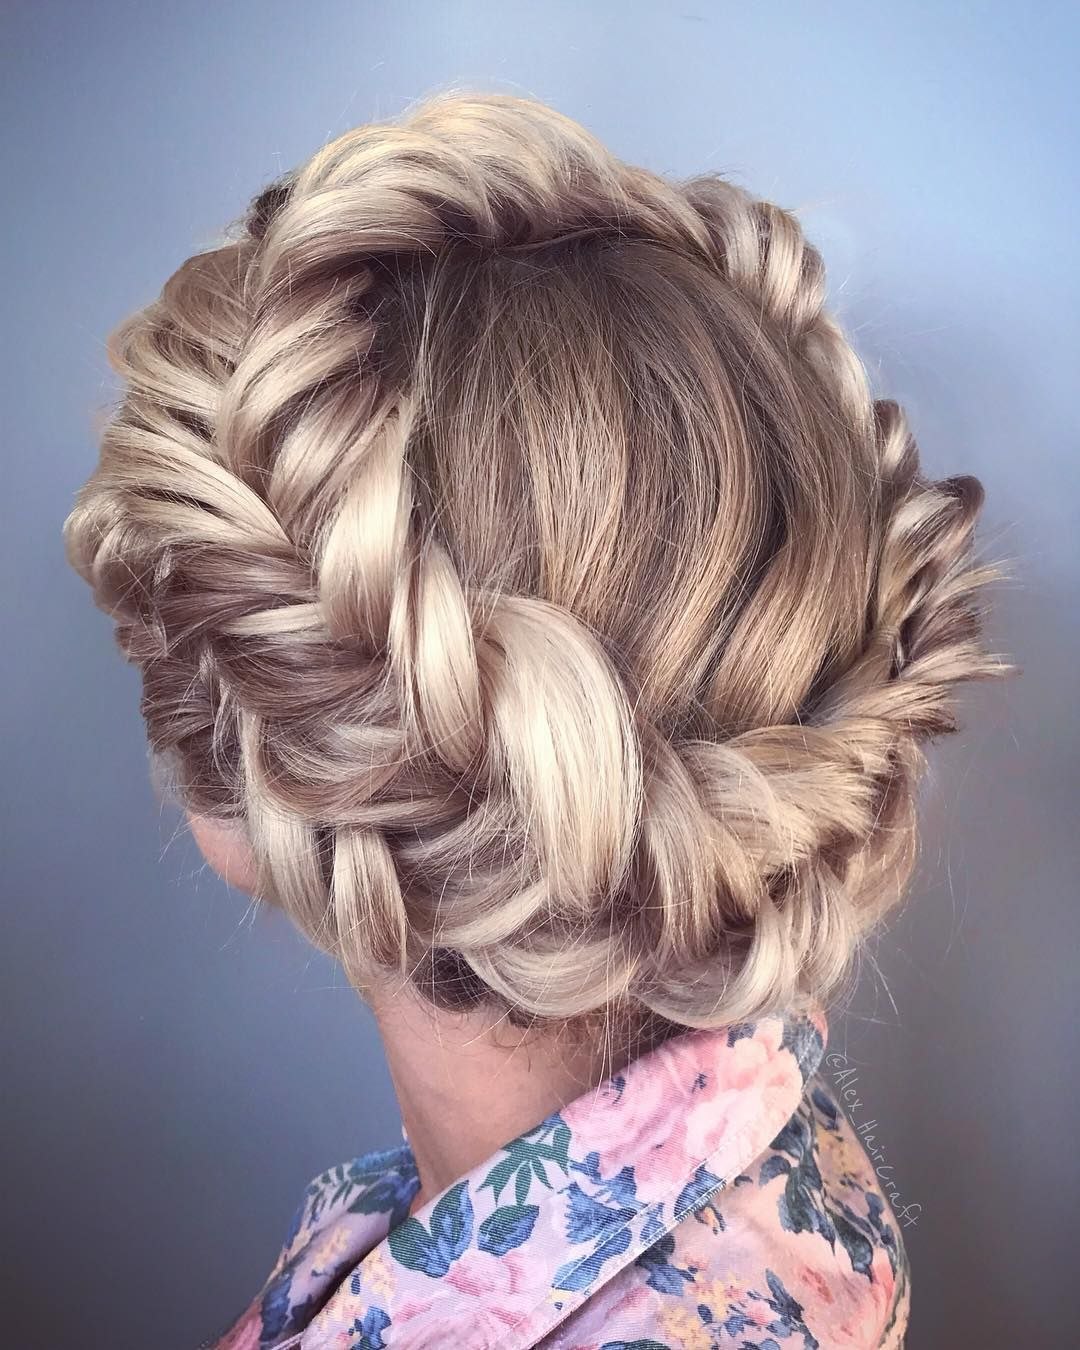 Gorgeous braided hairstyles alex pelerossi make up and hair